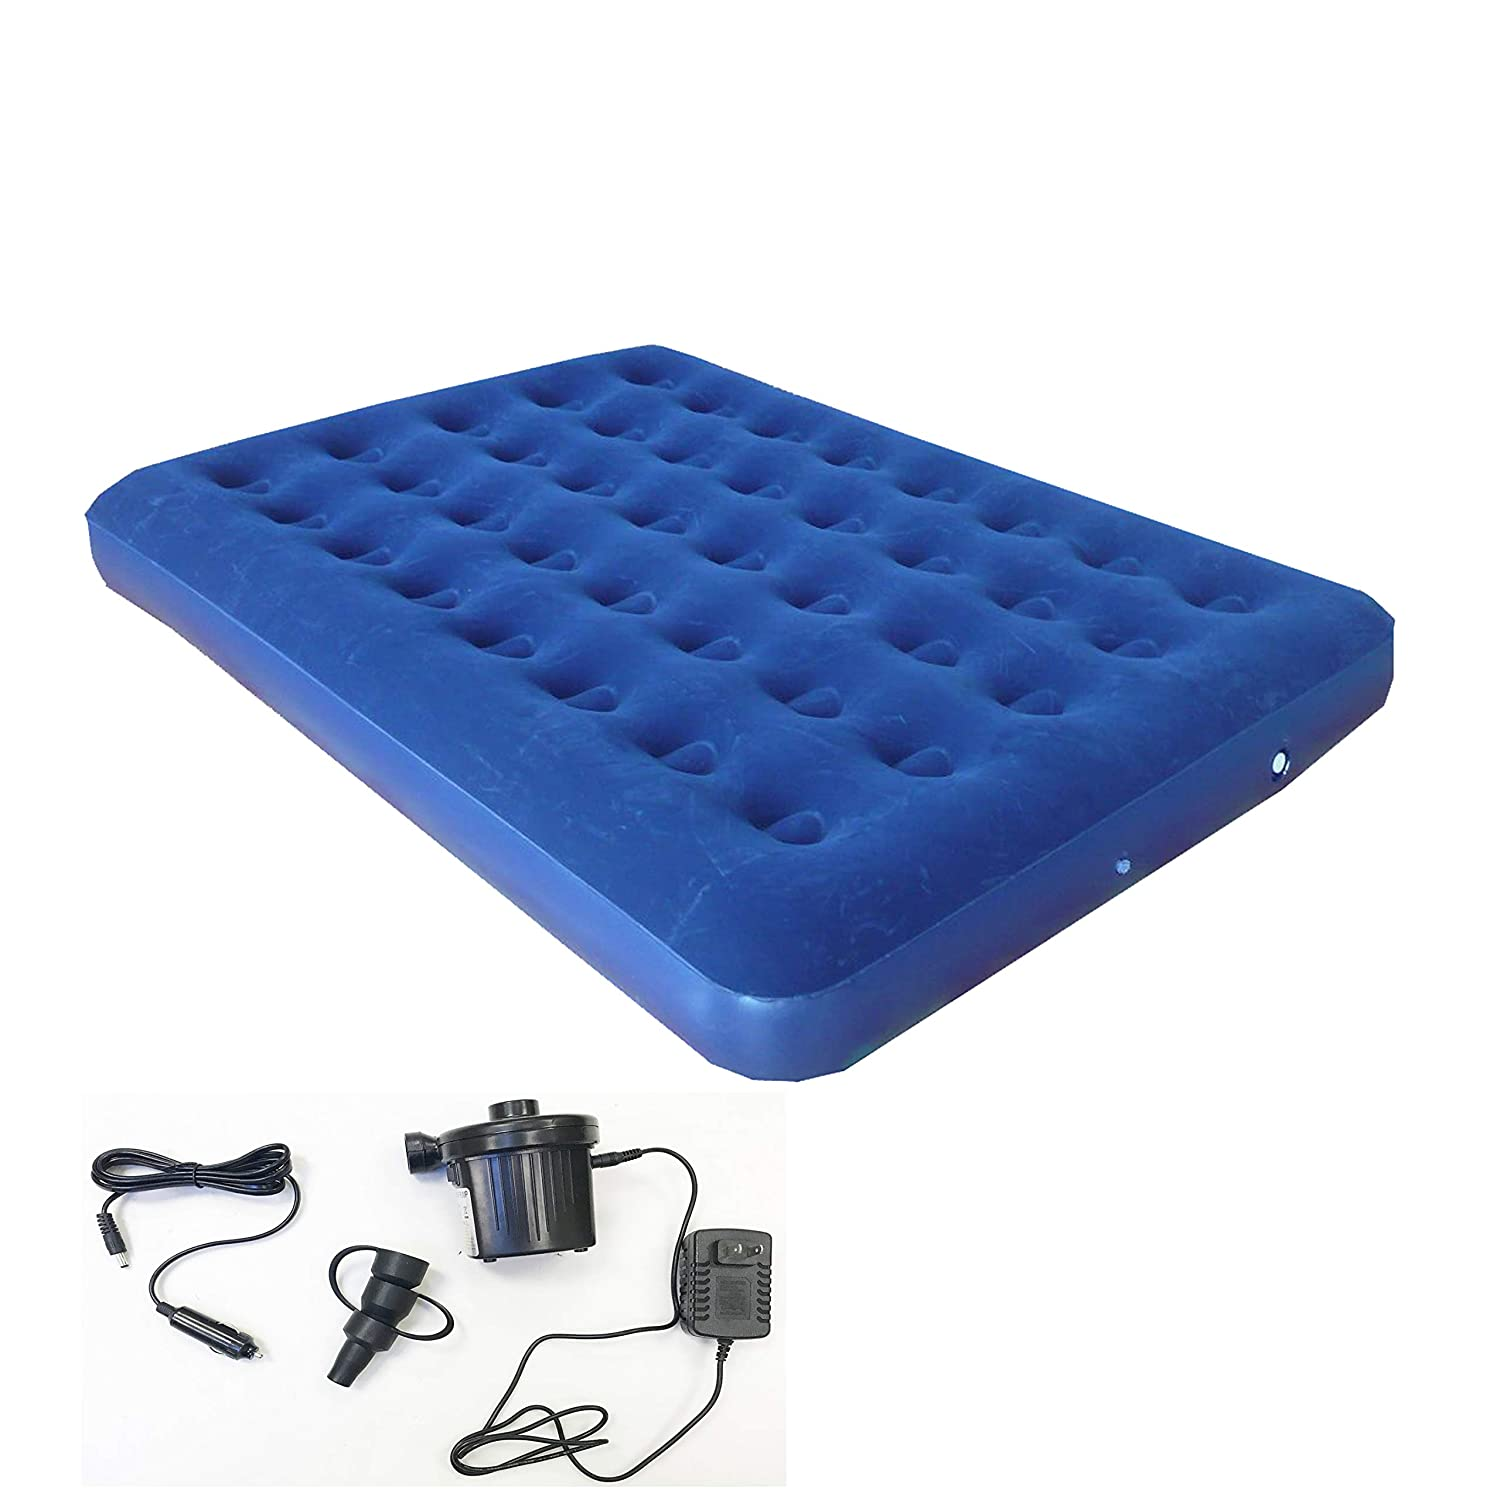 Combo Including Both Car Charge and Wall Plug Zaltana Camping Zaltana Double Size Air Mattress with Two Way Electric air Pump AMD+APE